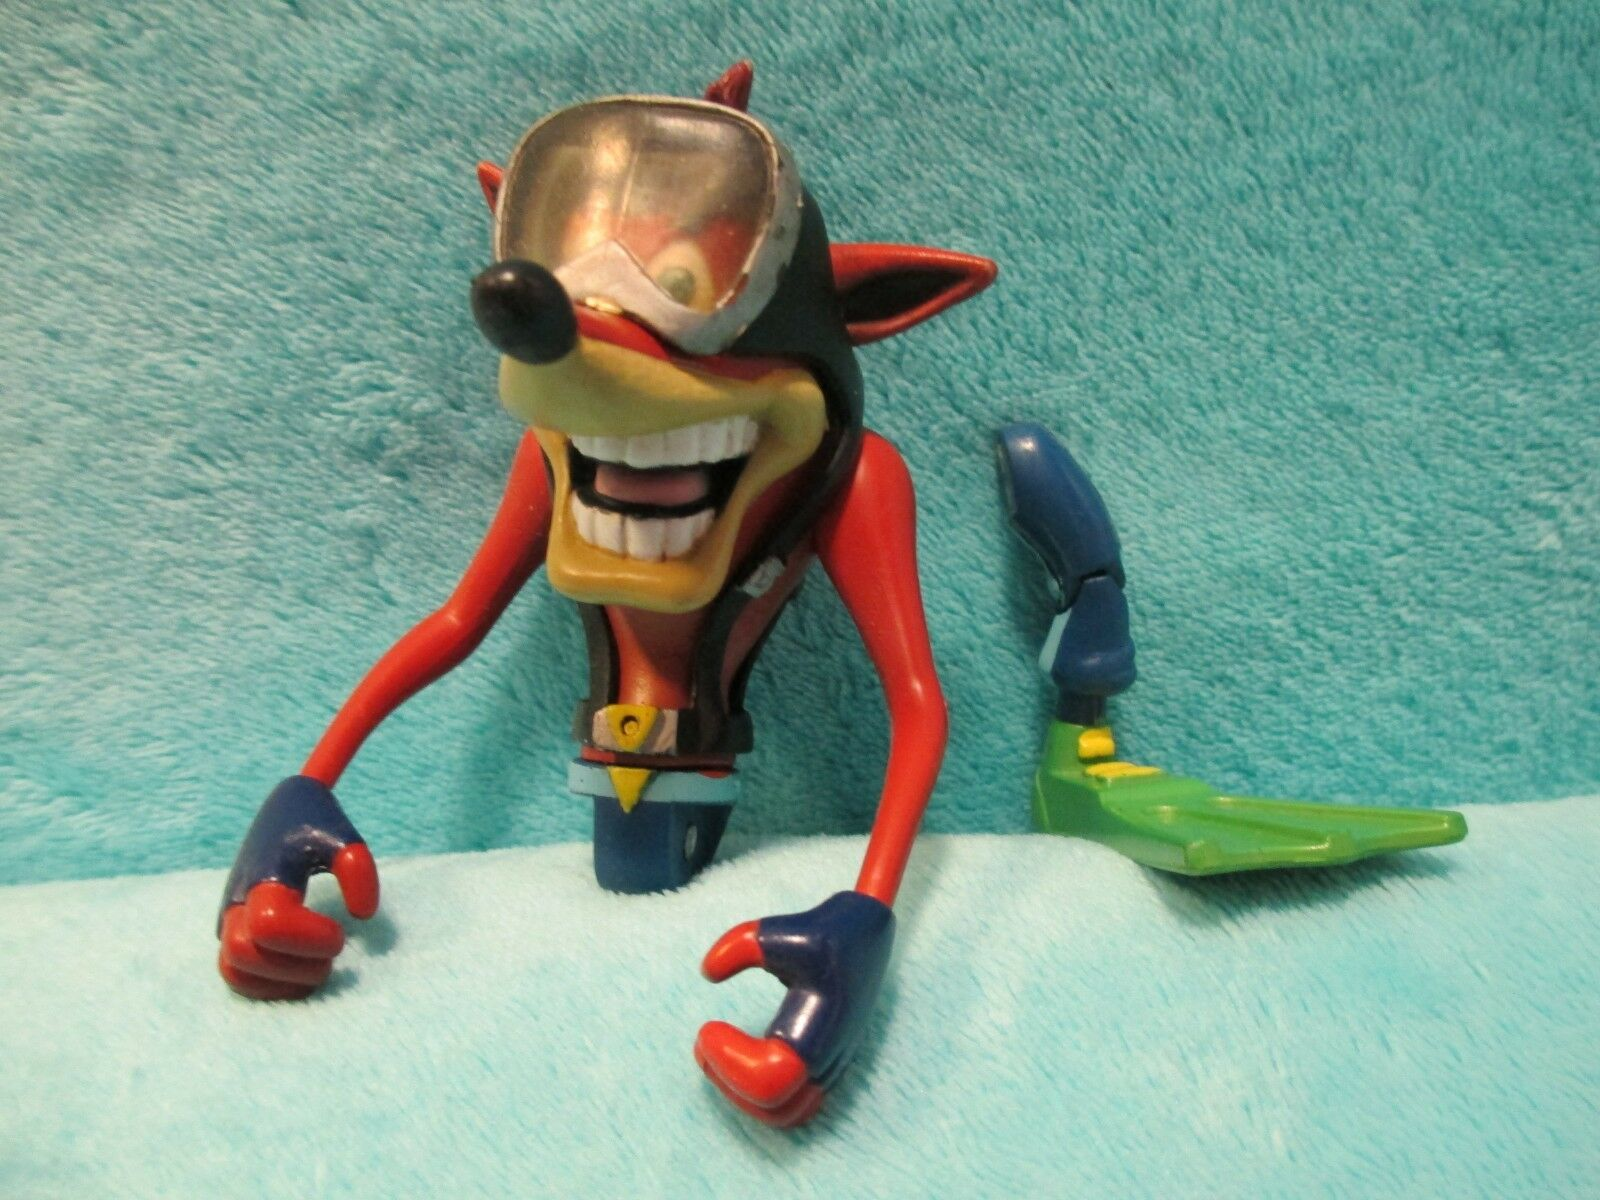 1999 ReSaurus PS1 Crash Bandicoot Series 2 Two - Deep Dive Action Figure 5